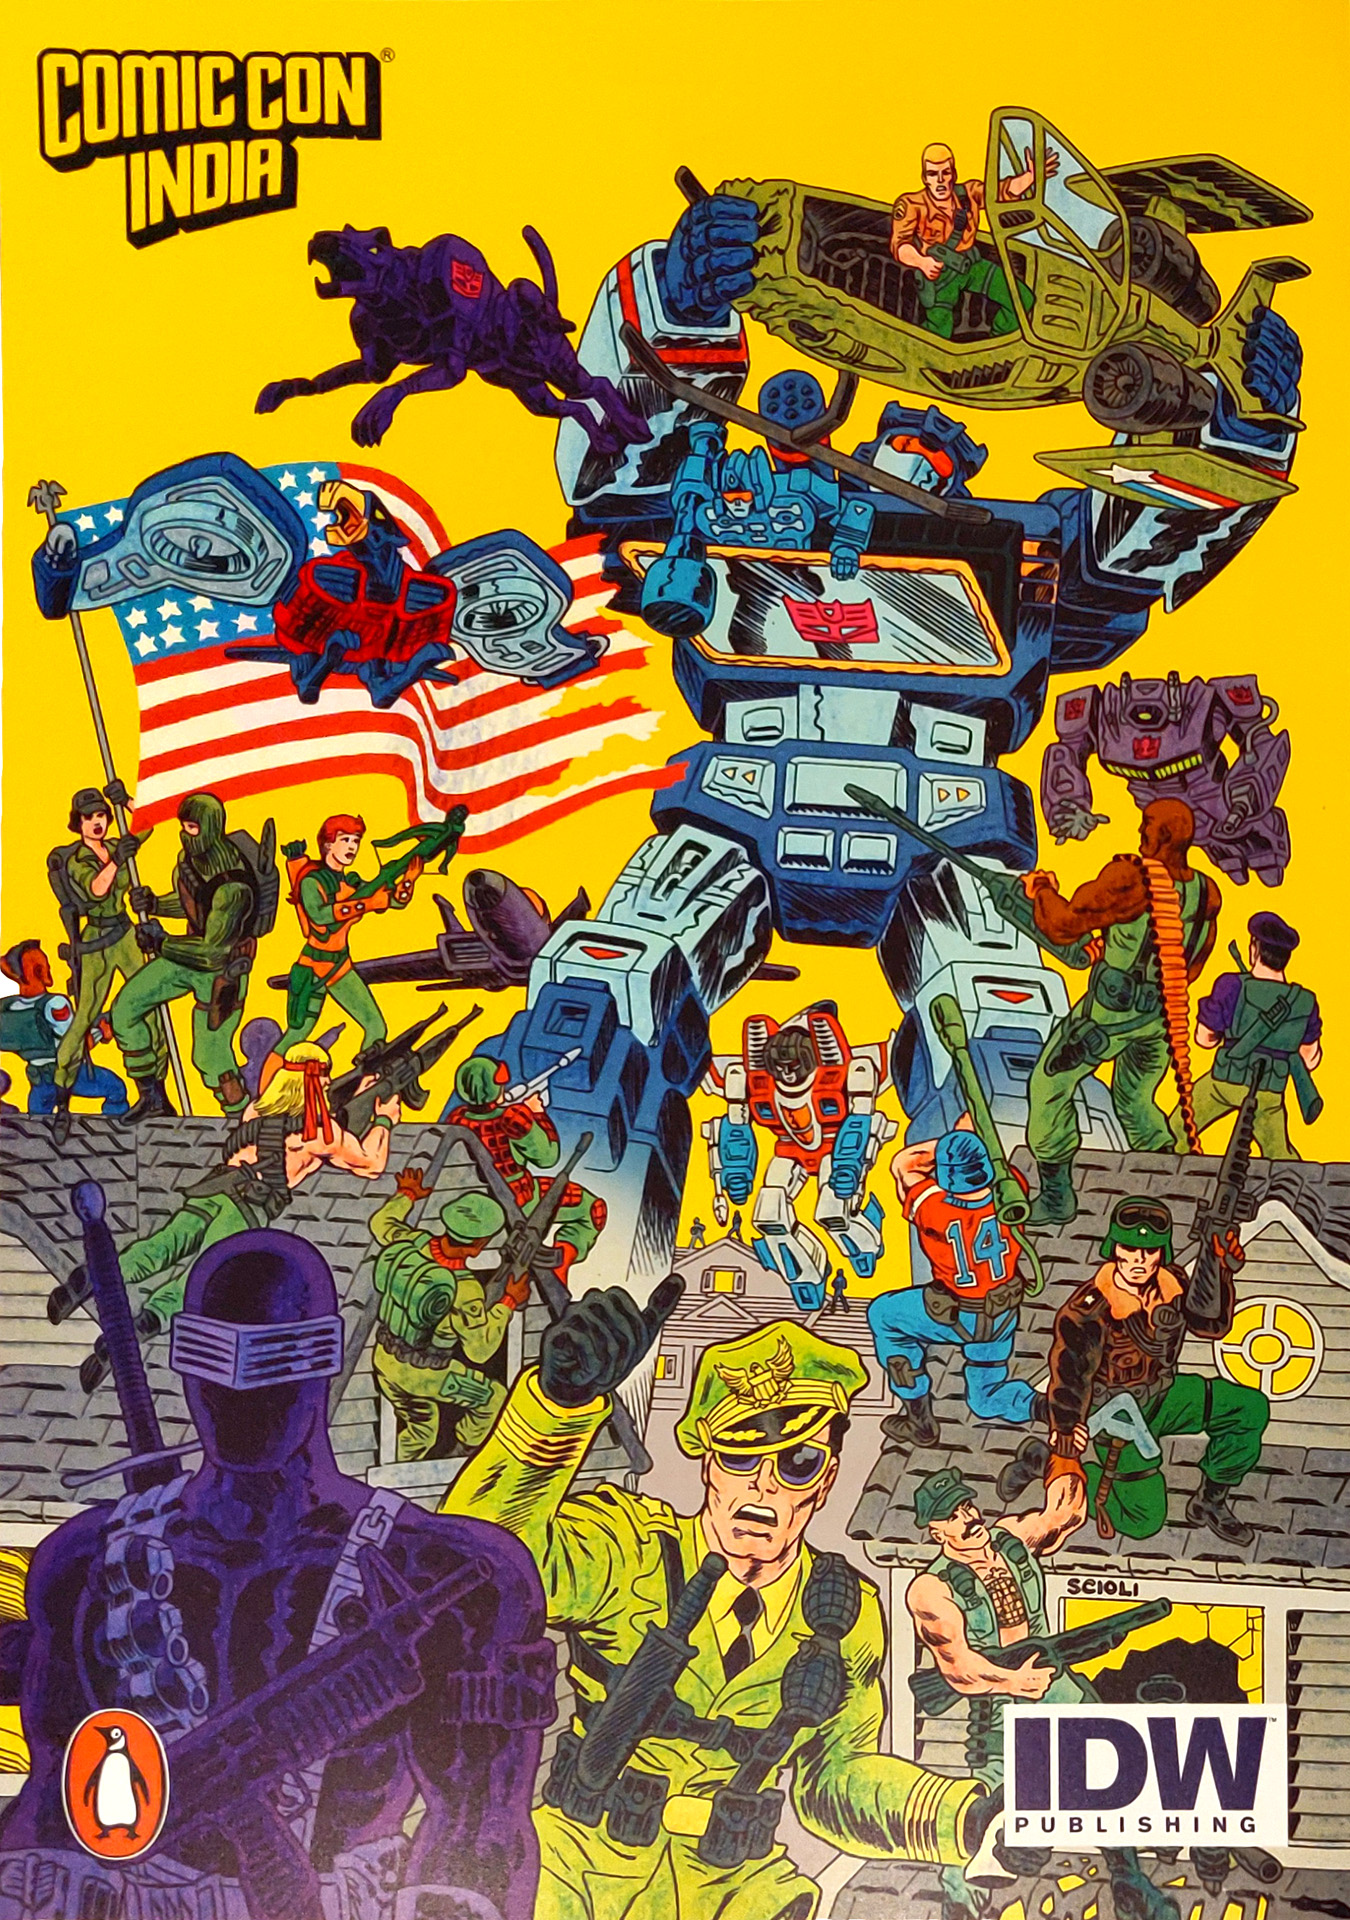 Comic Con Mumbai 2018 Goodies - Transformers vs GI Joe Issue #1 Cover Poster